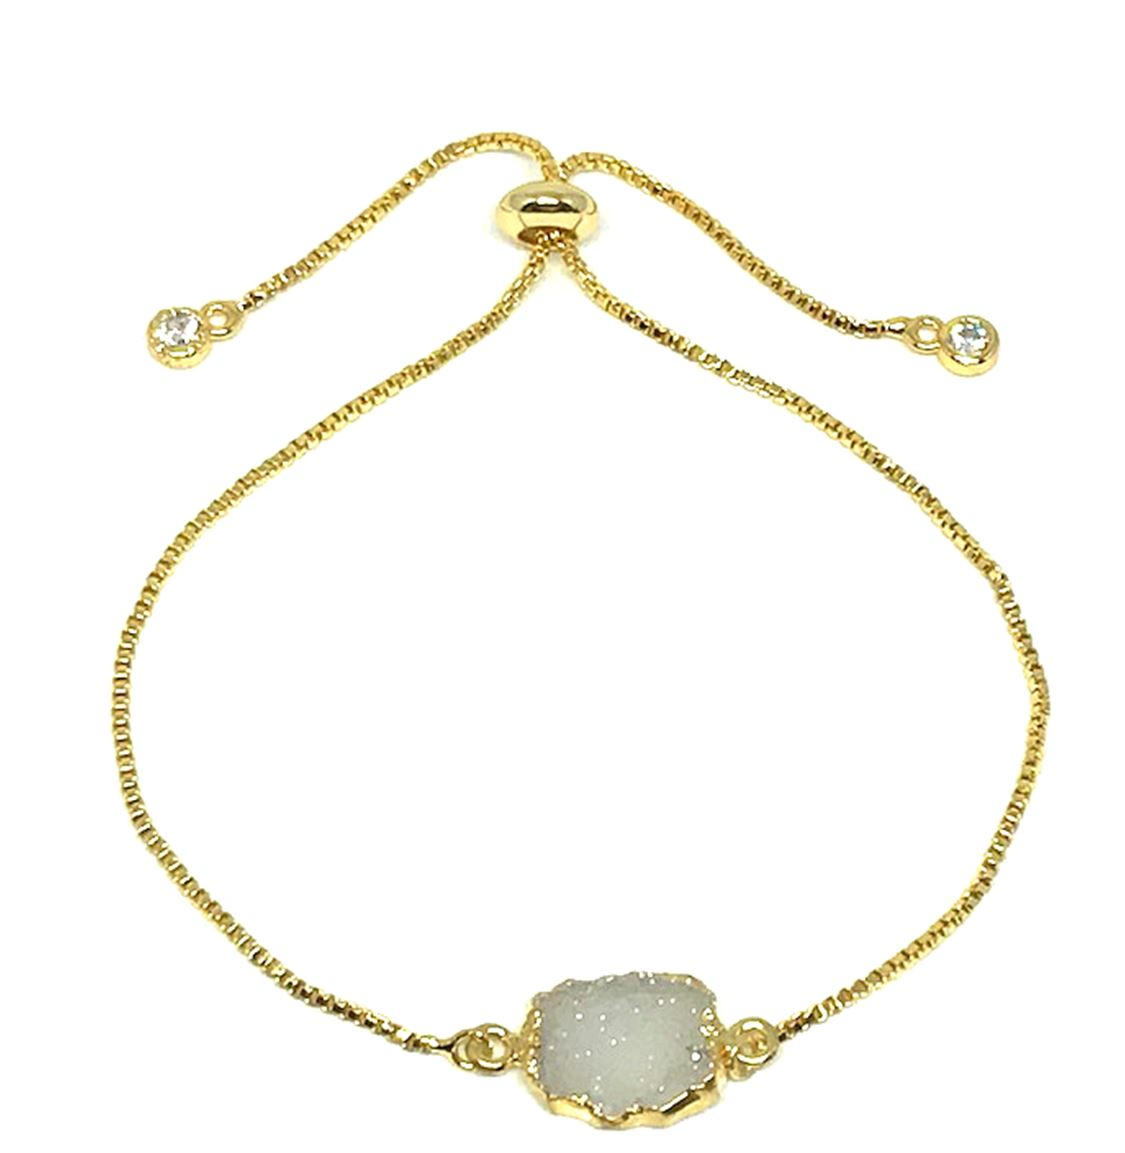 Electroform Stone Pull Bracelet: White Druzy (PBT748DZ) Also on Gunmetal Chain Bracelet athenadesigns Gold